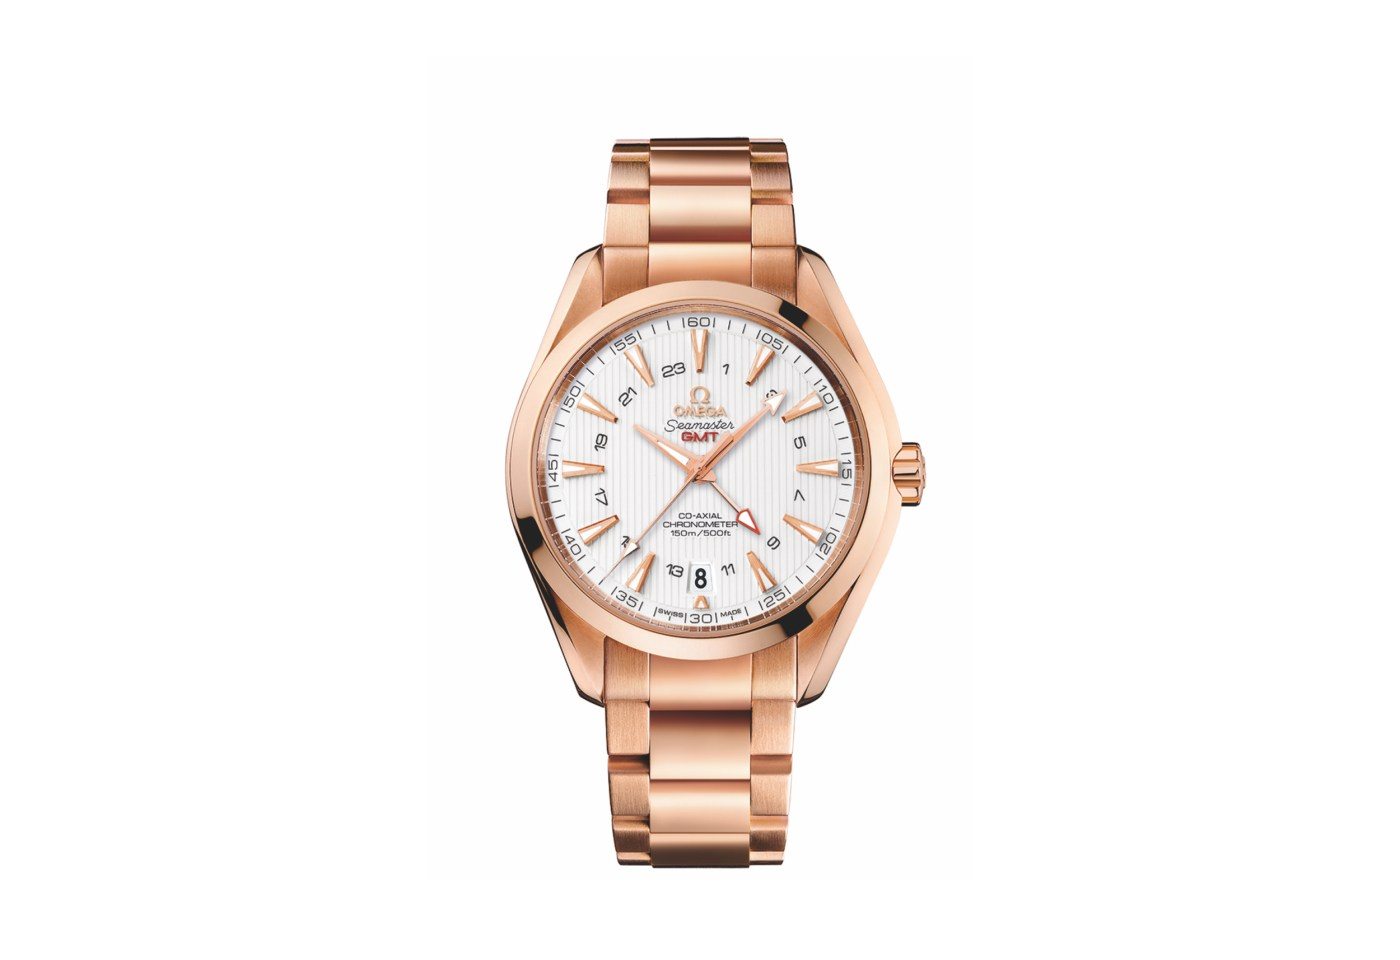 Omega Seamaster Aqua Terra 150M Co-Axial GMT in red gold